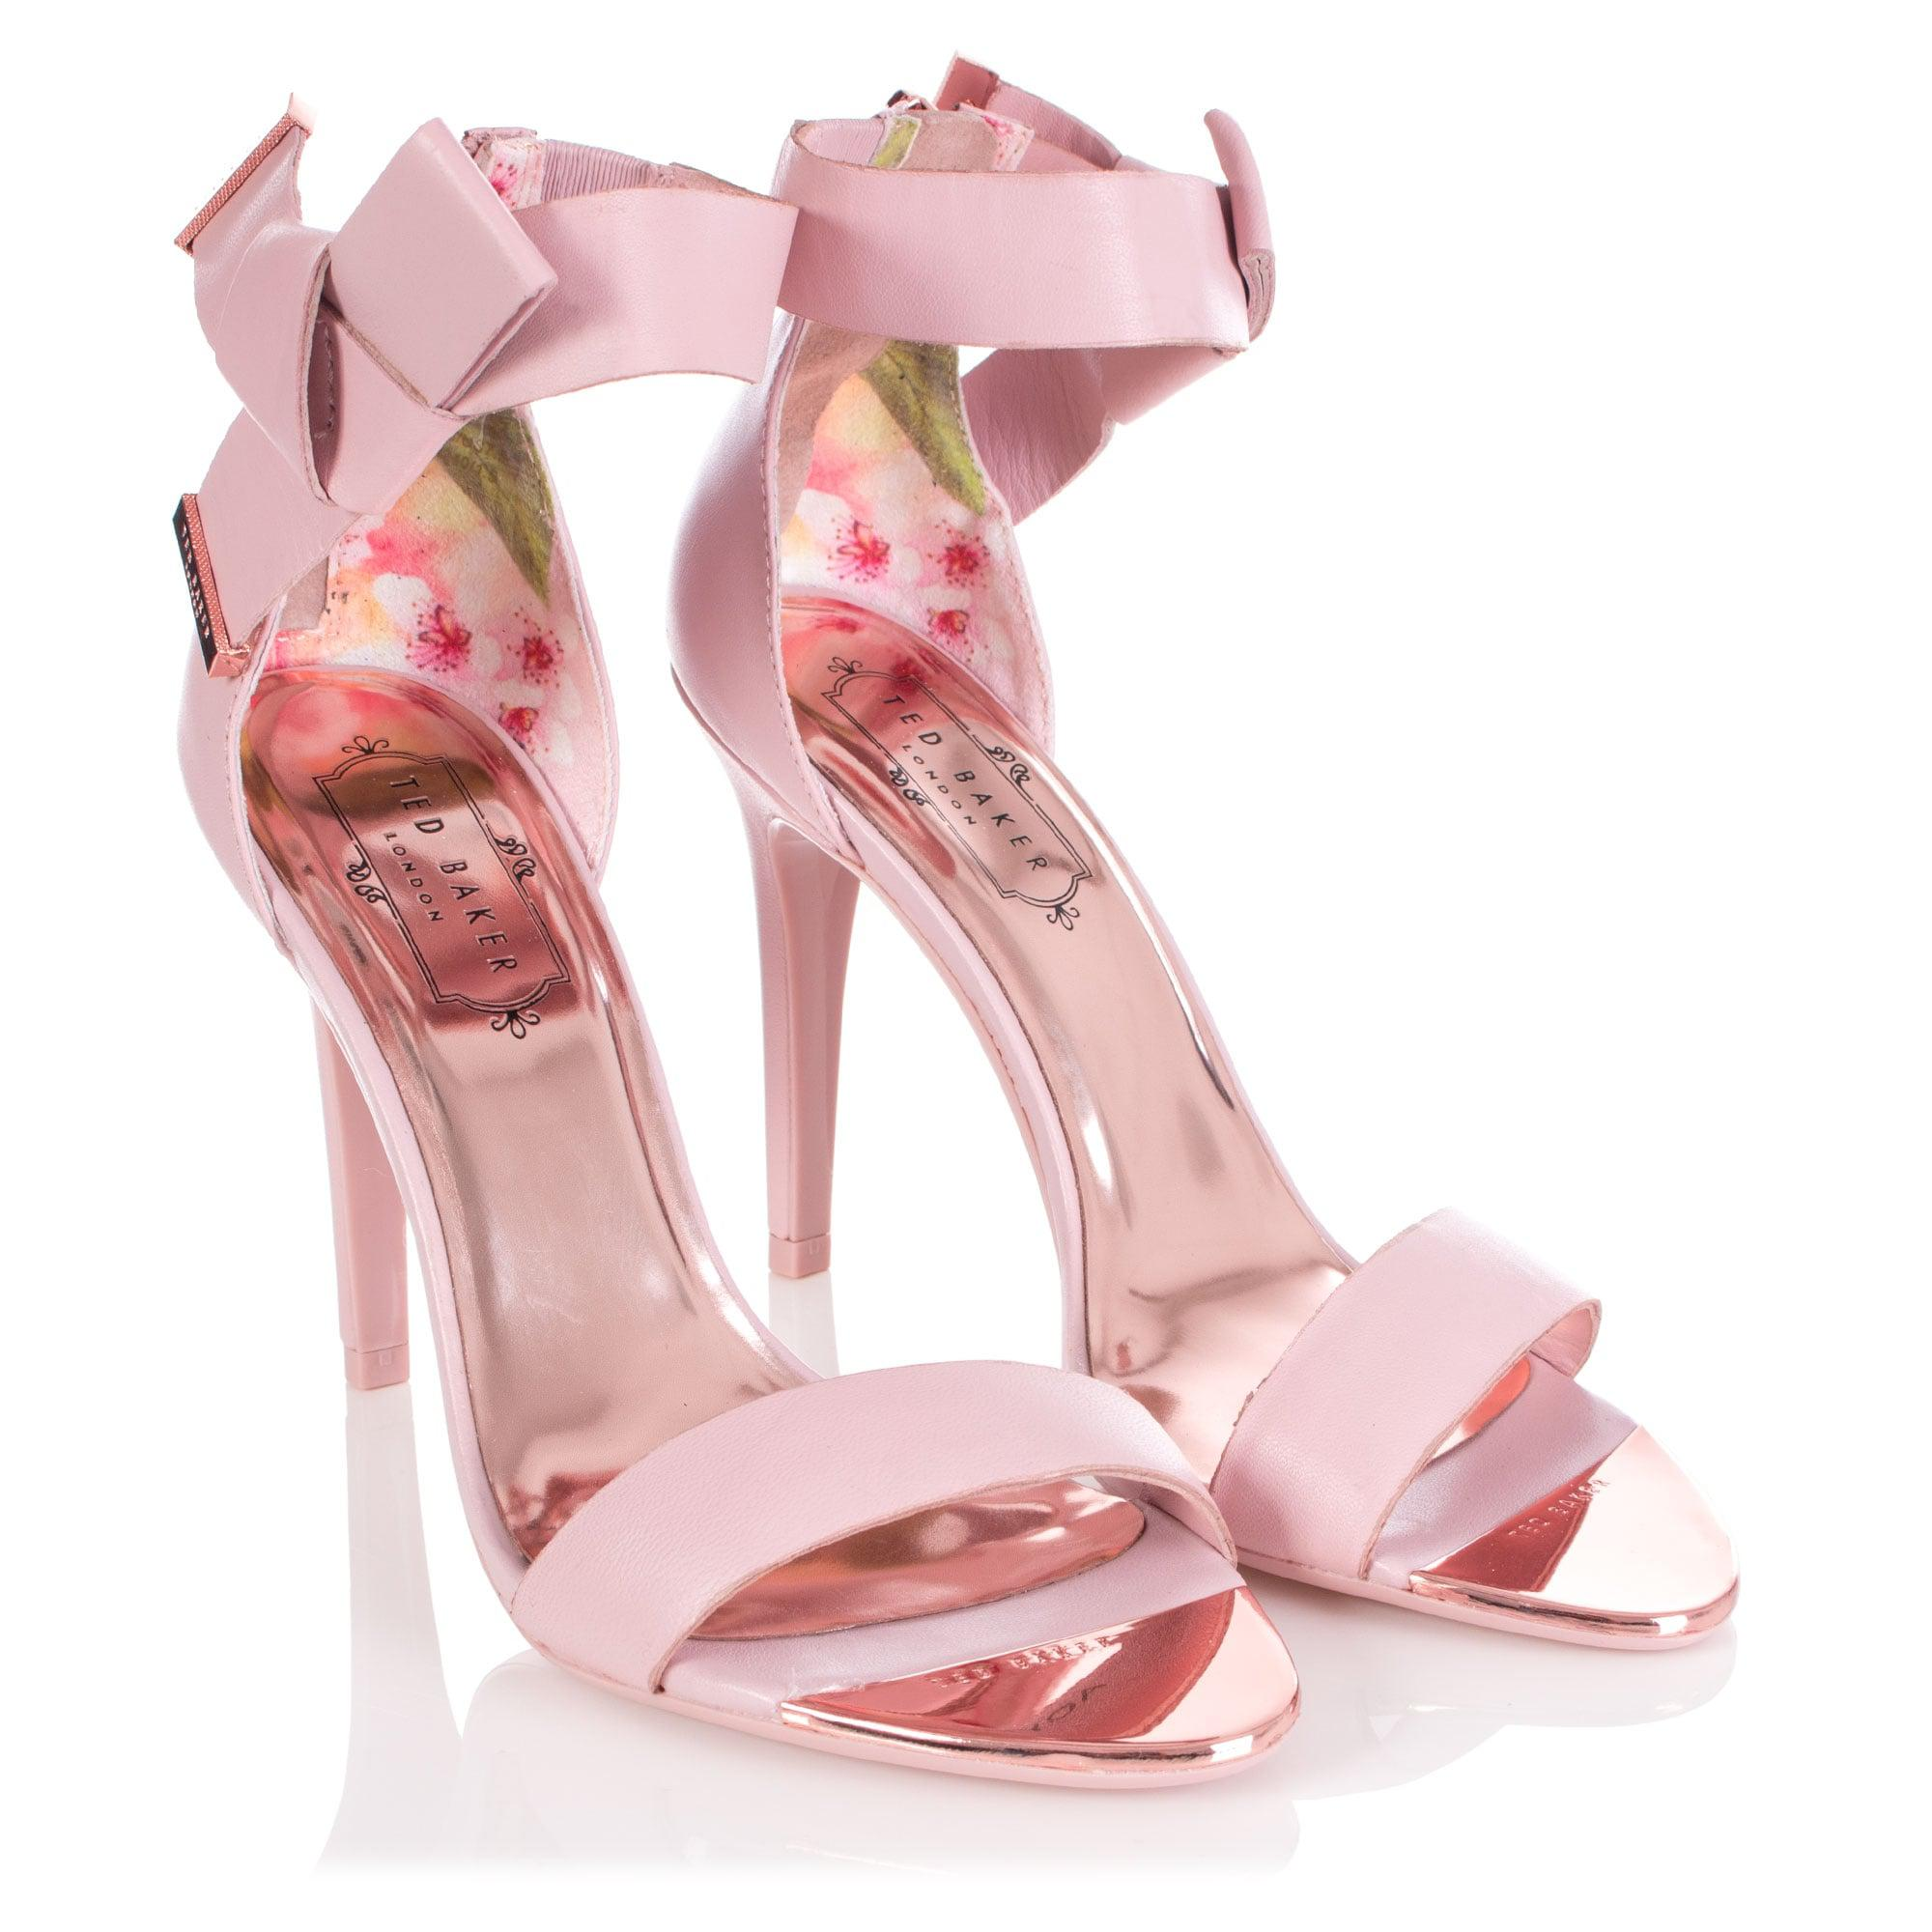 017062d1020daf Ted Baker Saphrun Knotted Bow Leather Sandal in Pink - Lyst